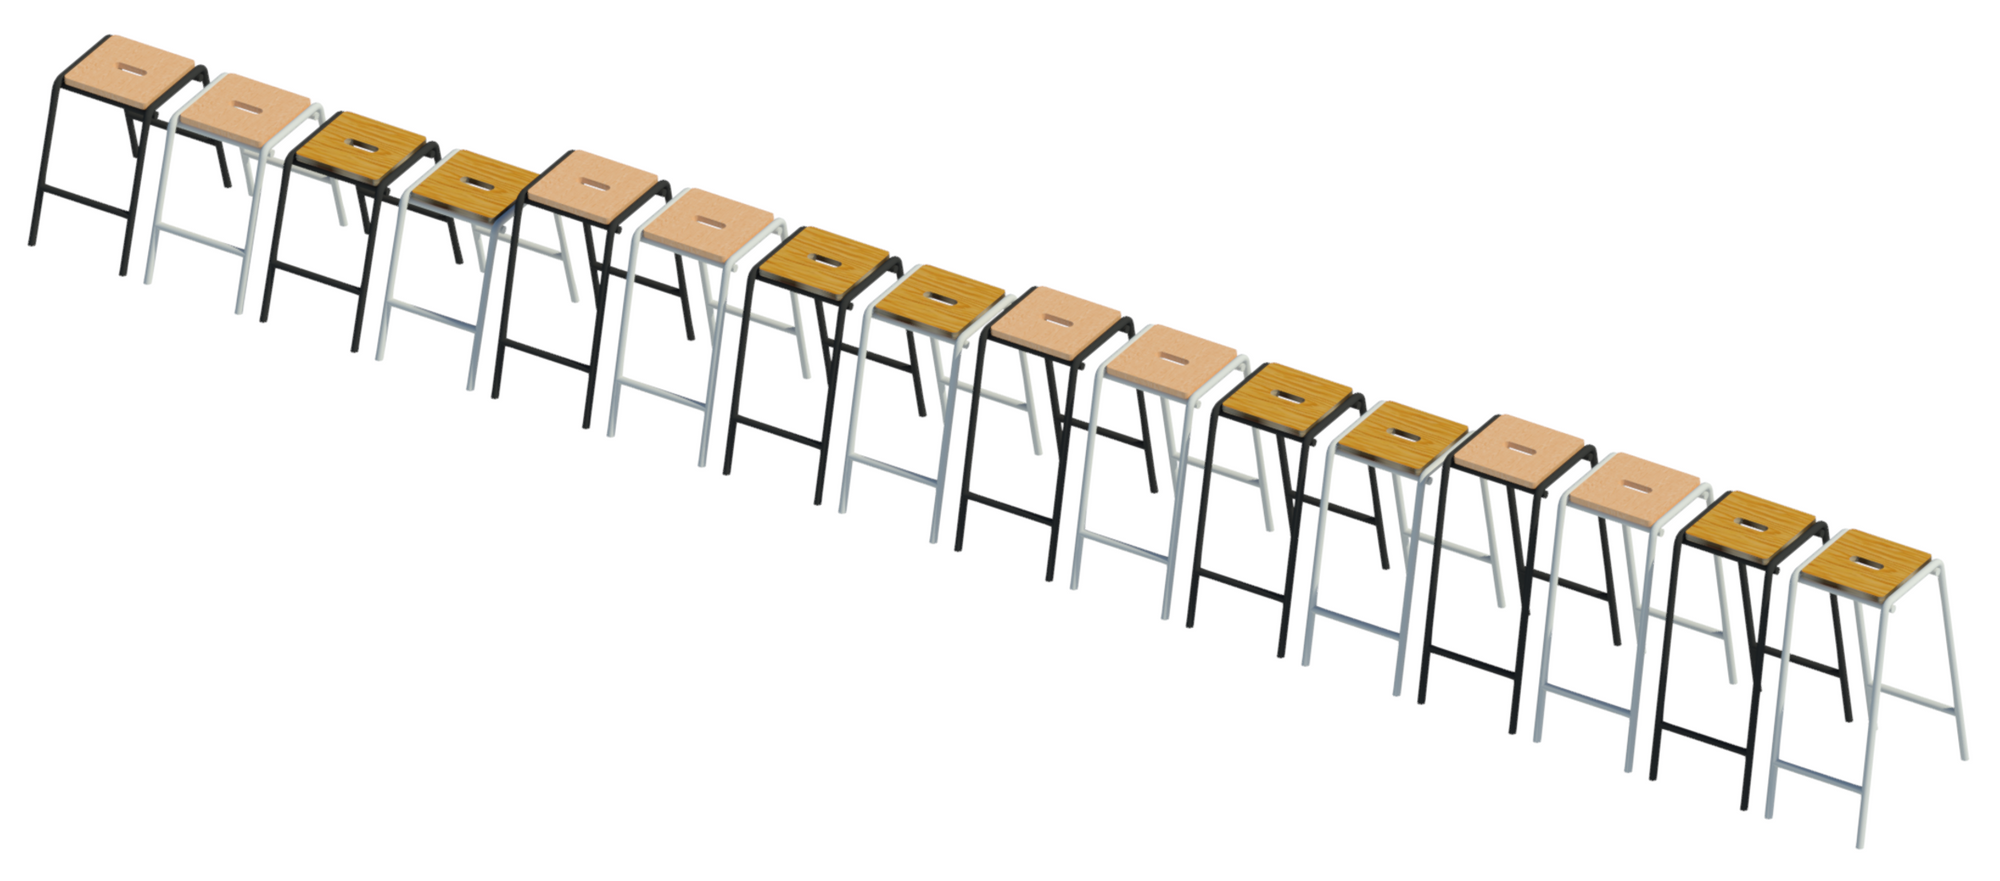 3D image showing high stool Revit family types.